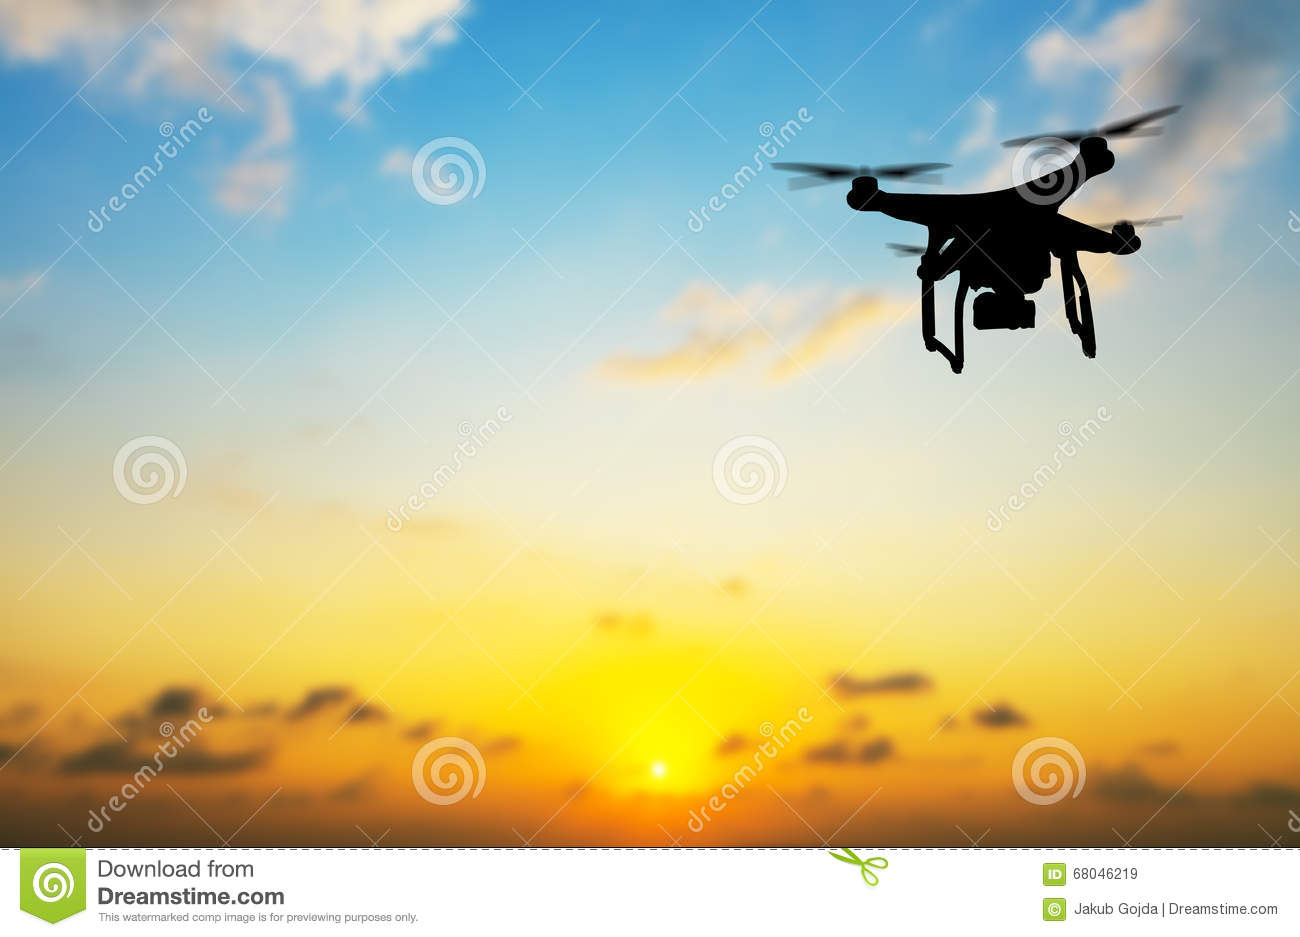 remote controlled drone with camera with Stock Photo Flying Silhouette Drone Against Sunset Beautiful Sky Image68046219 on Nerfs N Strike Elite Terrascout Drone Records Video Launching Darts as well White Drone Digital Camera Flying Sky Background in addition Holy Stone Rc Drone Review Drone And Quadcopter additionally Mavic Pro Review My First Impressions Of The New Dji Aircraft likewise Best Small Drones.